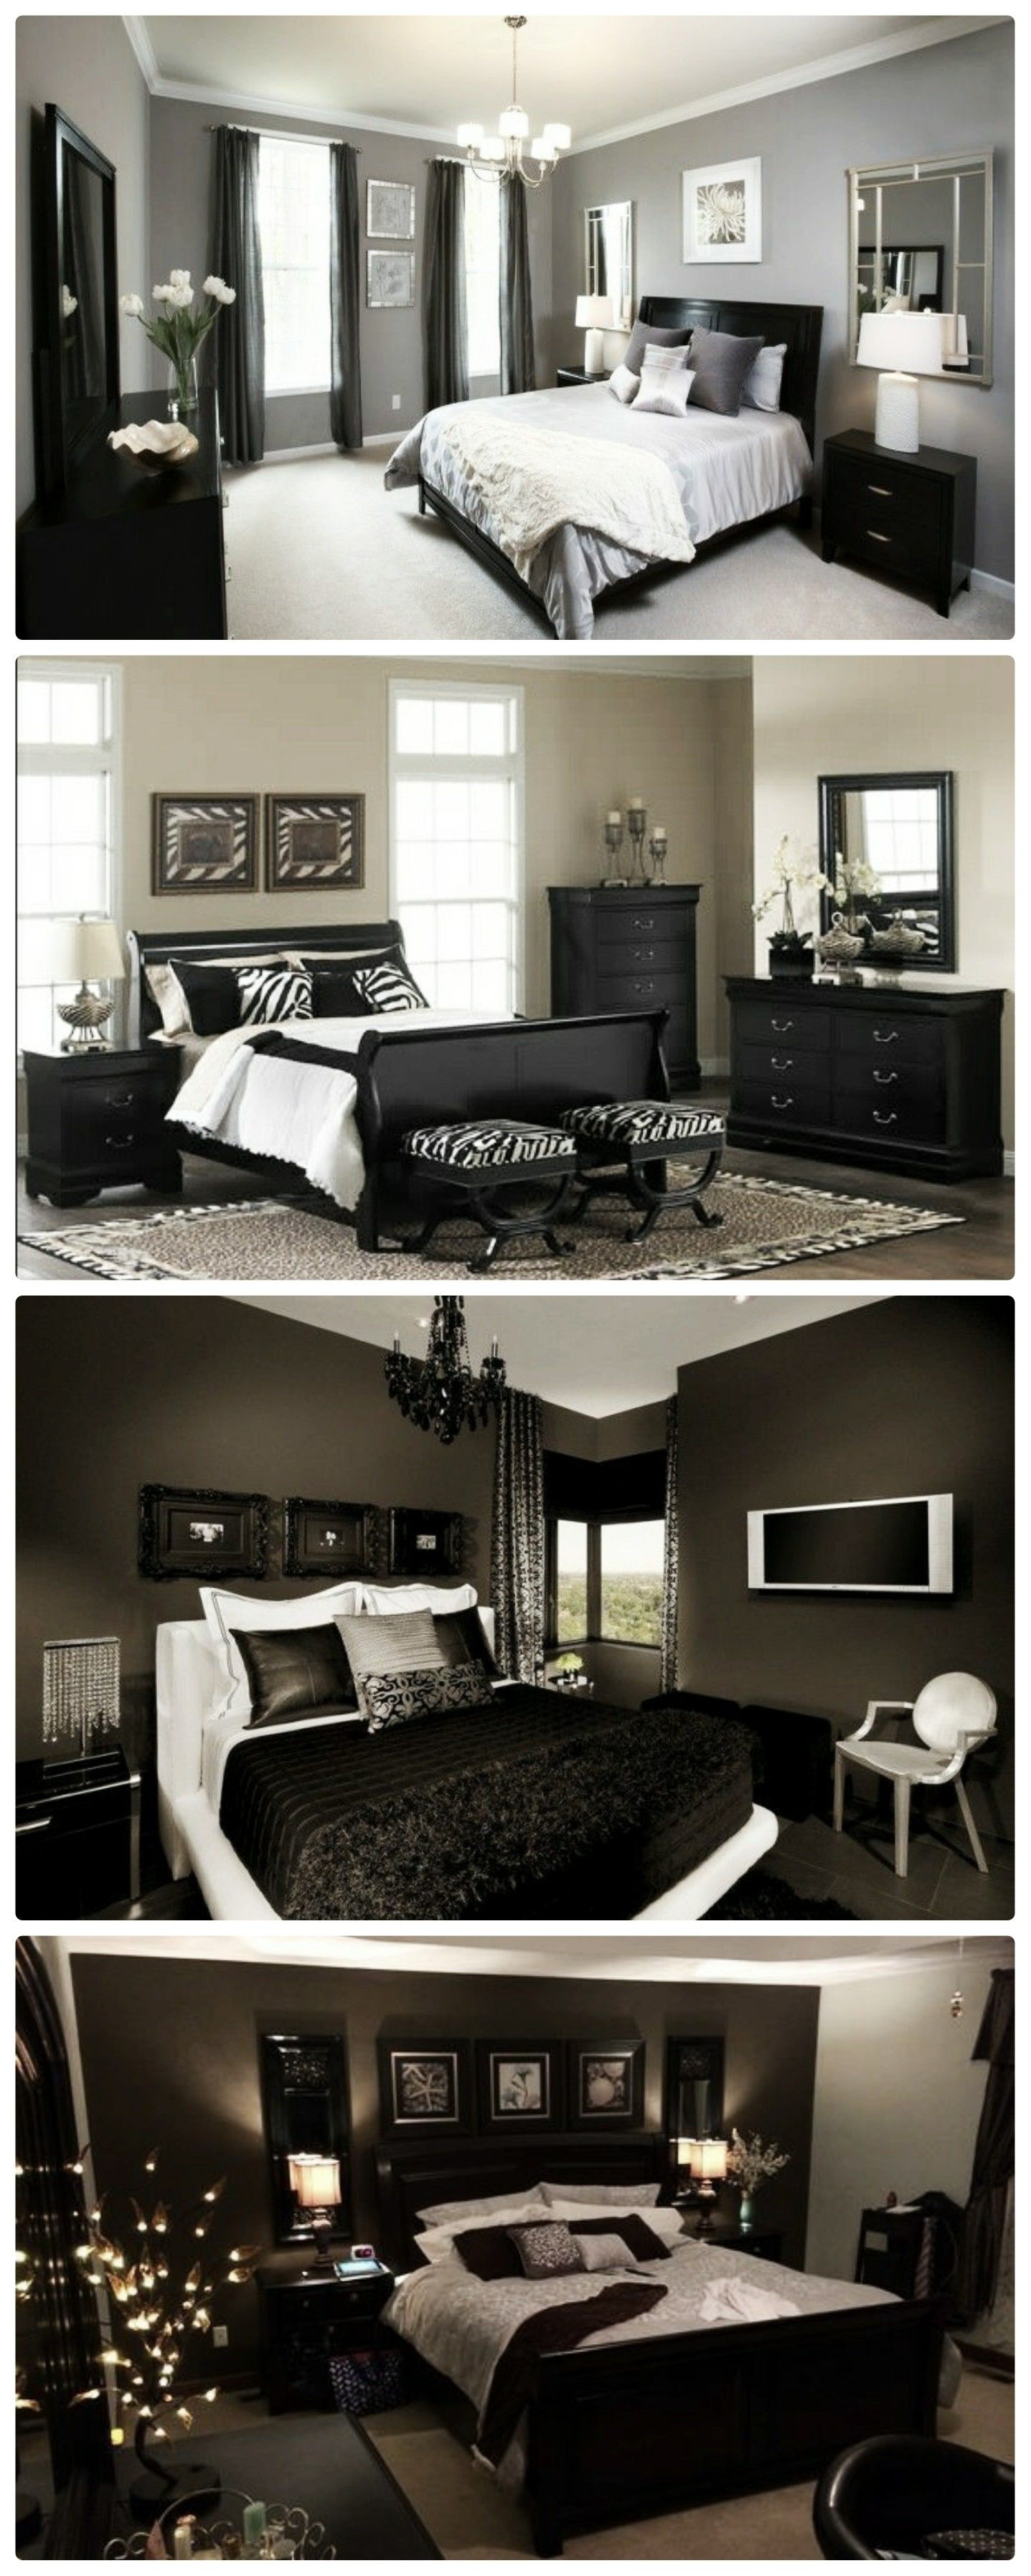 27 Bedroom Decor Ideas For Couples Singles And Teenagers Bedroom Ideas For Couples Romantic Apartment Decorating For Couples Romantic Master Bedroom Bedroom decor for couples